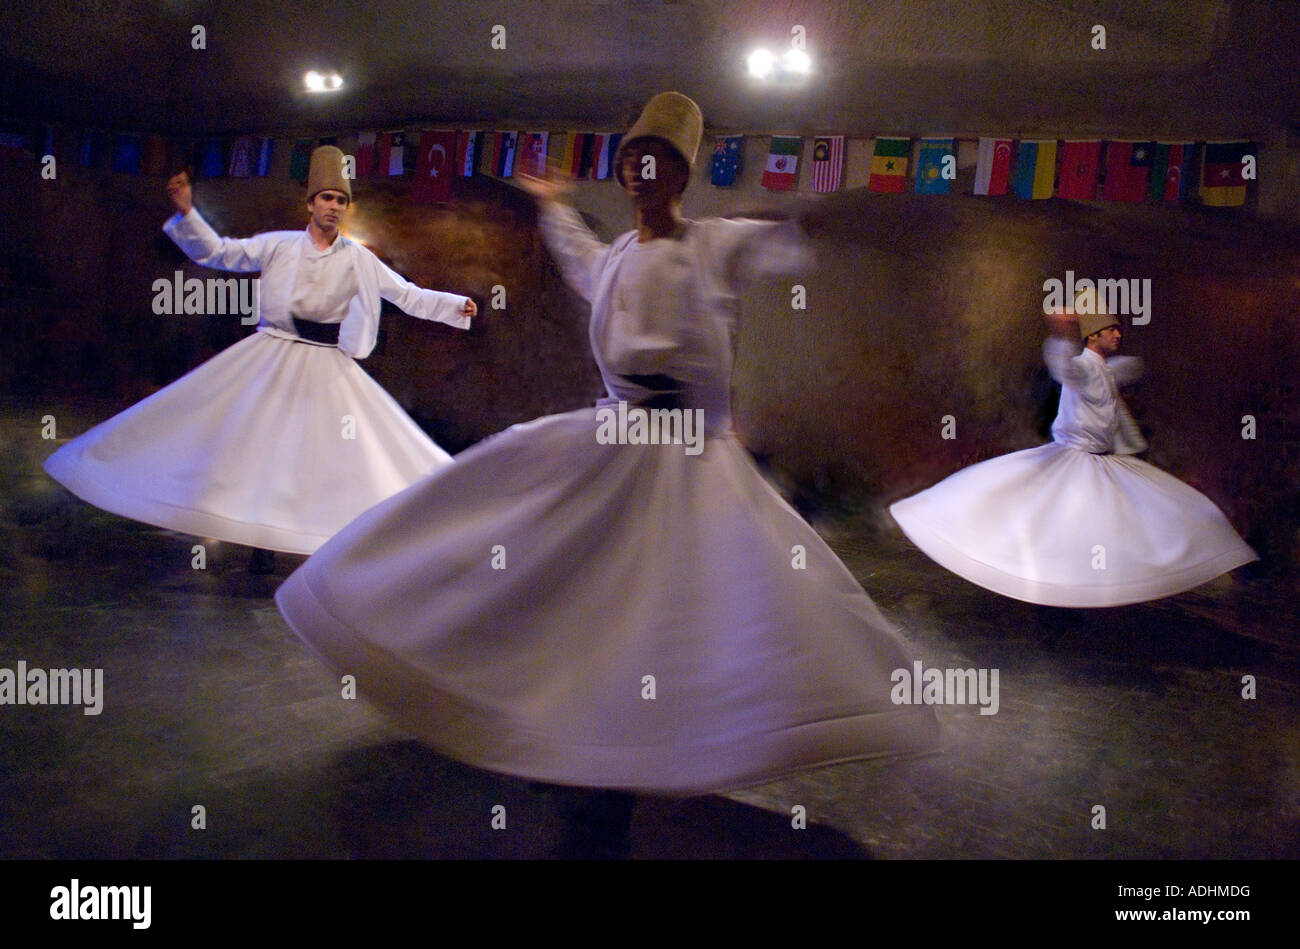 Whirling Dervishes, Cappadocia, Turkey - Stock Image